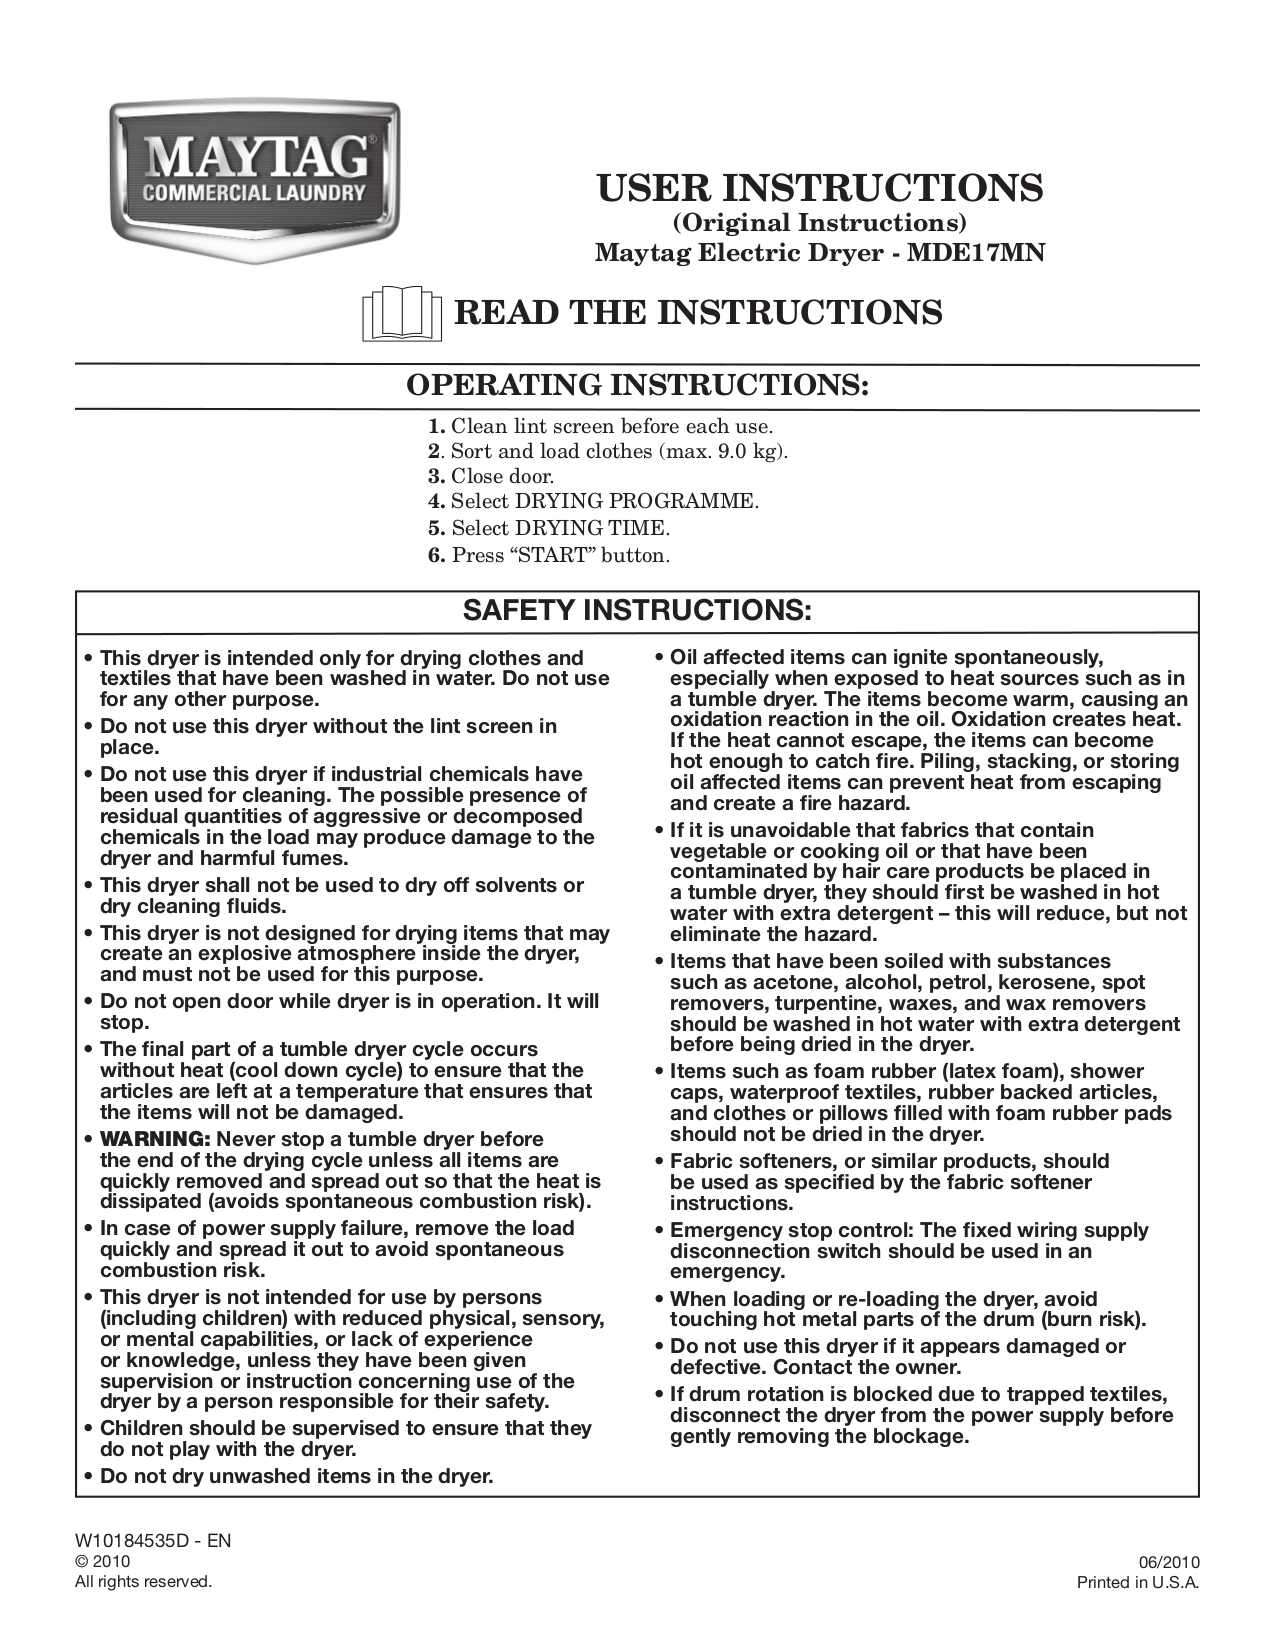 Download Free Pdf For Maytag Mde17mn Dryer Manual New Edition Schematic